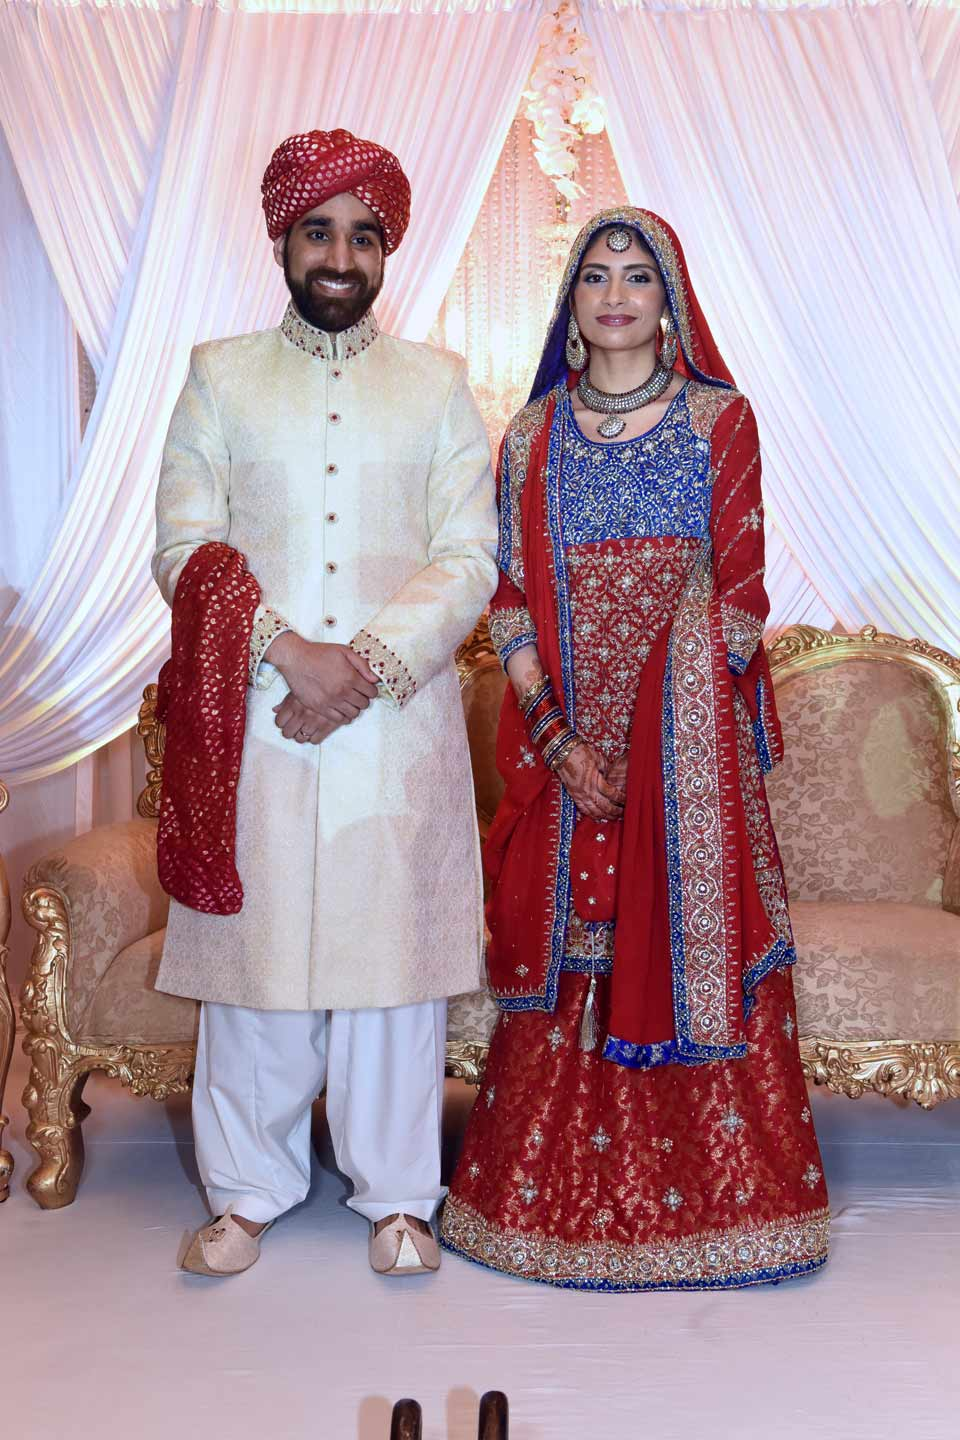 Hammad (groom) and Aneela (bride) in their traditional wedding outfit.